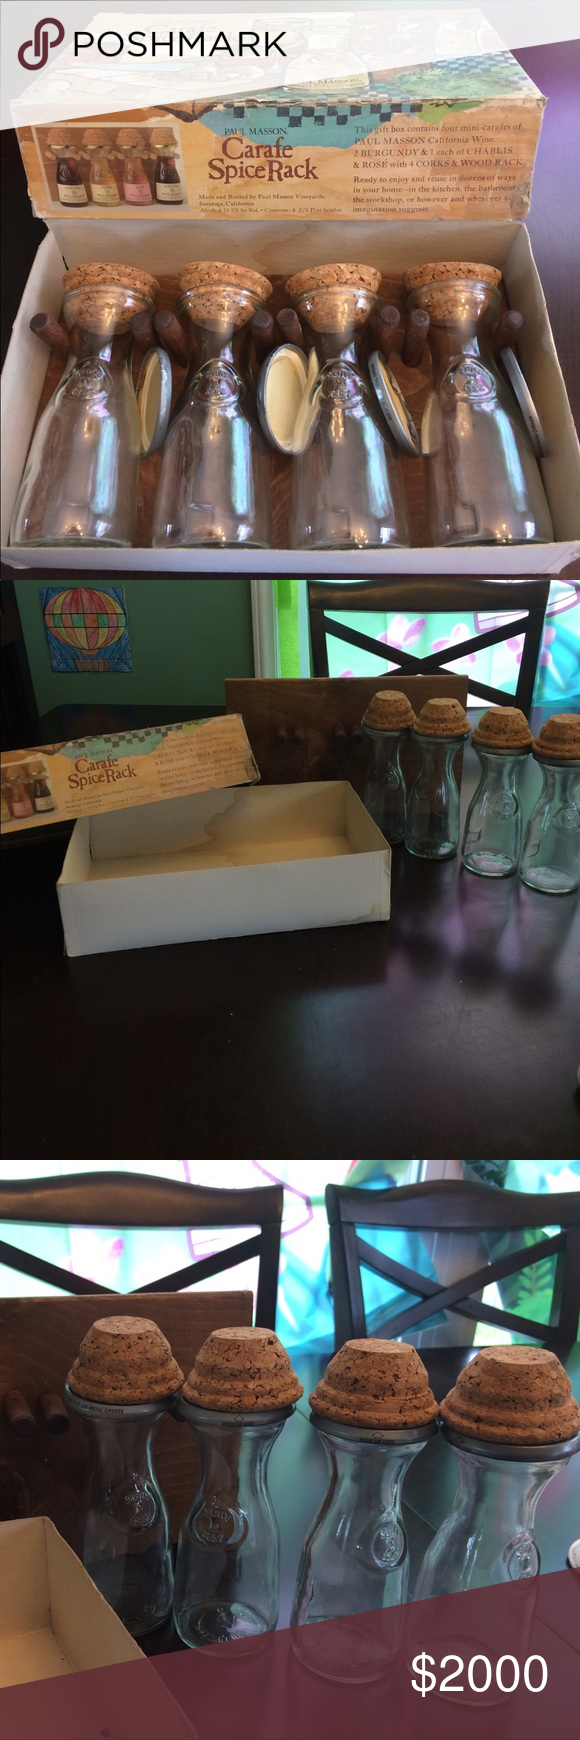 1970's vintage Paul Mason set Looking for the perfect gift for the collector who has everything?  You found one!  Very rare and HTF with all of the original pieces...see pics.  4 carafes, 4 corks, 4 metal lids, wall rack, and box.  Jars are all chip free.  Corks are free of moisture damage and are like new.  Hanging board is a peg board.  If you are hanging this I would reinforce the pegs with glue ;-).  The box is damaged, but is the original packaging.  Any packaging inserts and labels are…